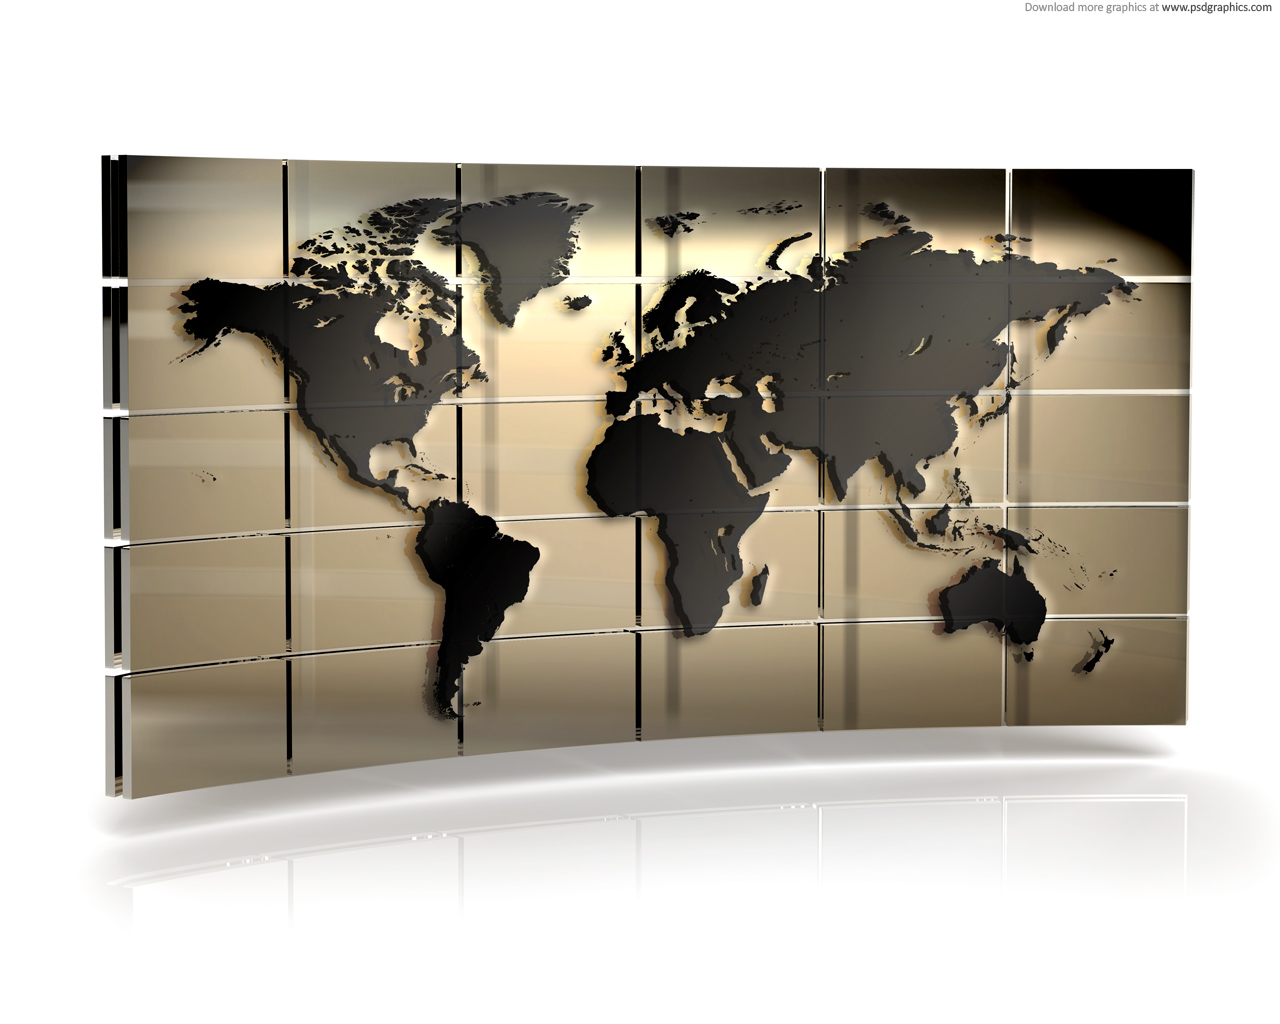 World map wall psdgraphics medium size preview 1280x1024px world map wall background gumiabroncs Image collections